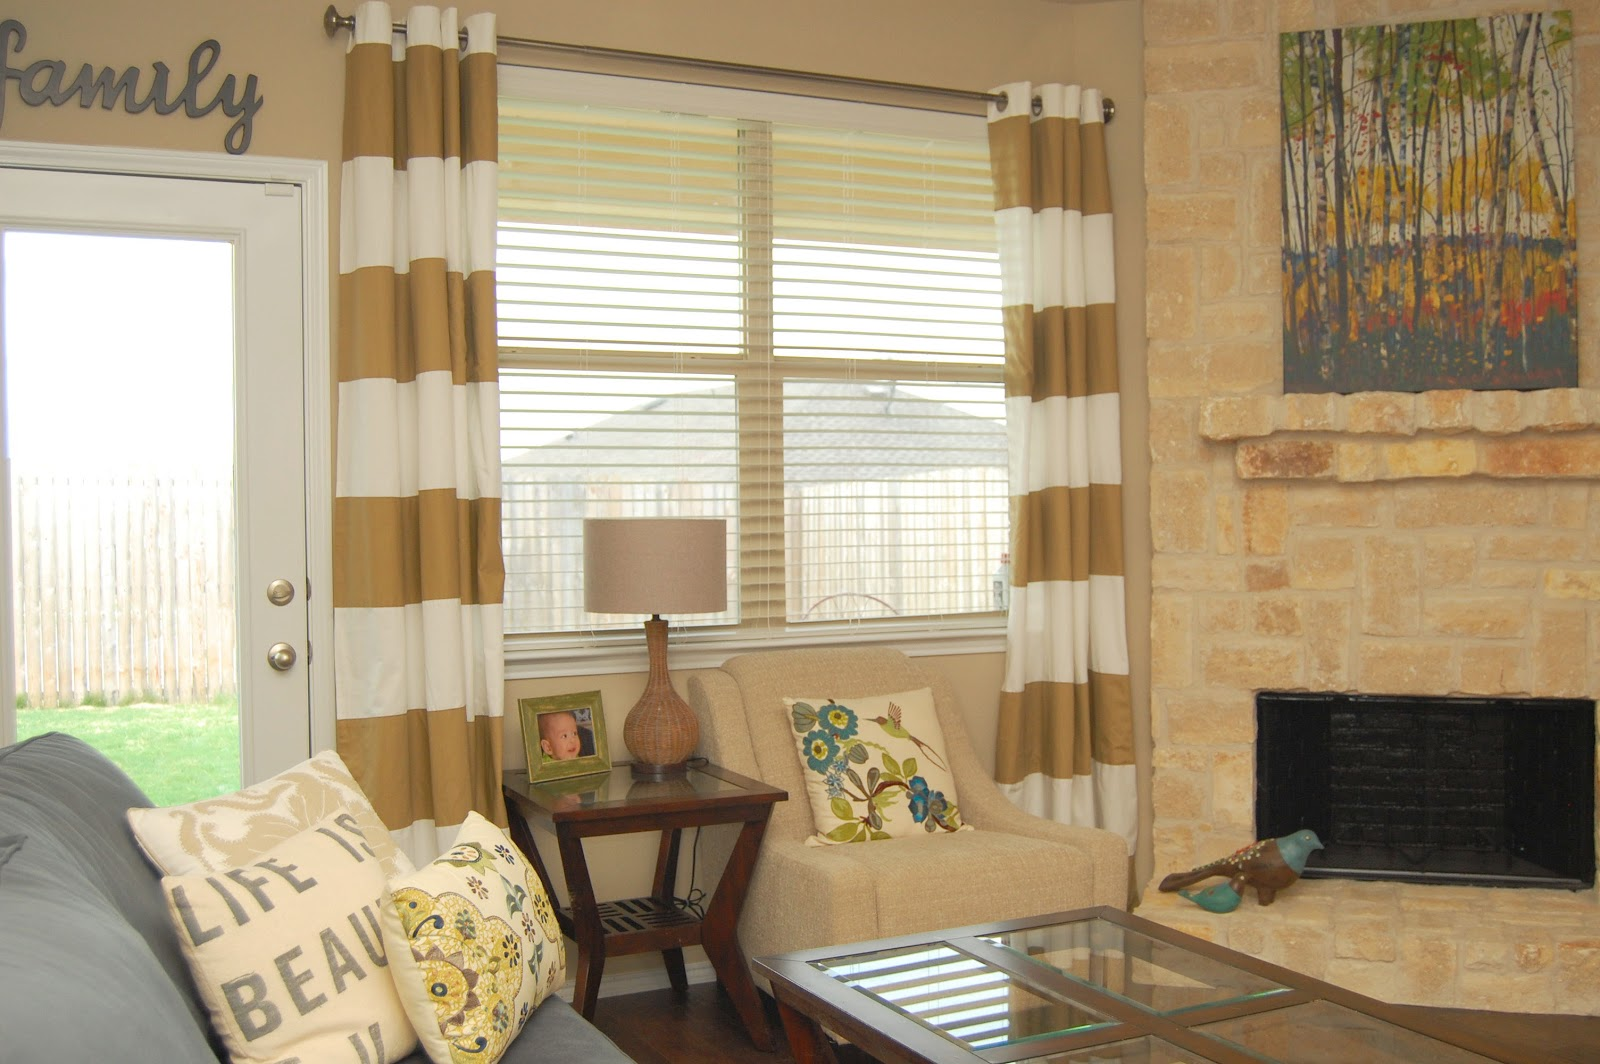 Style with Wisdom horizontal Striped Curtains for window with sofa for your living room inspiration